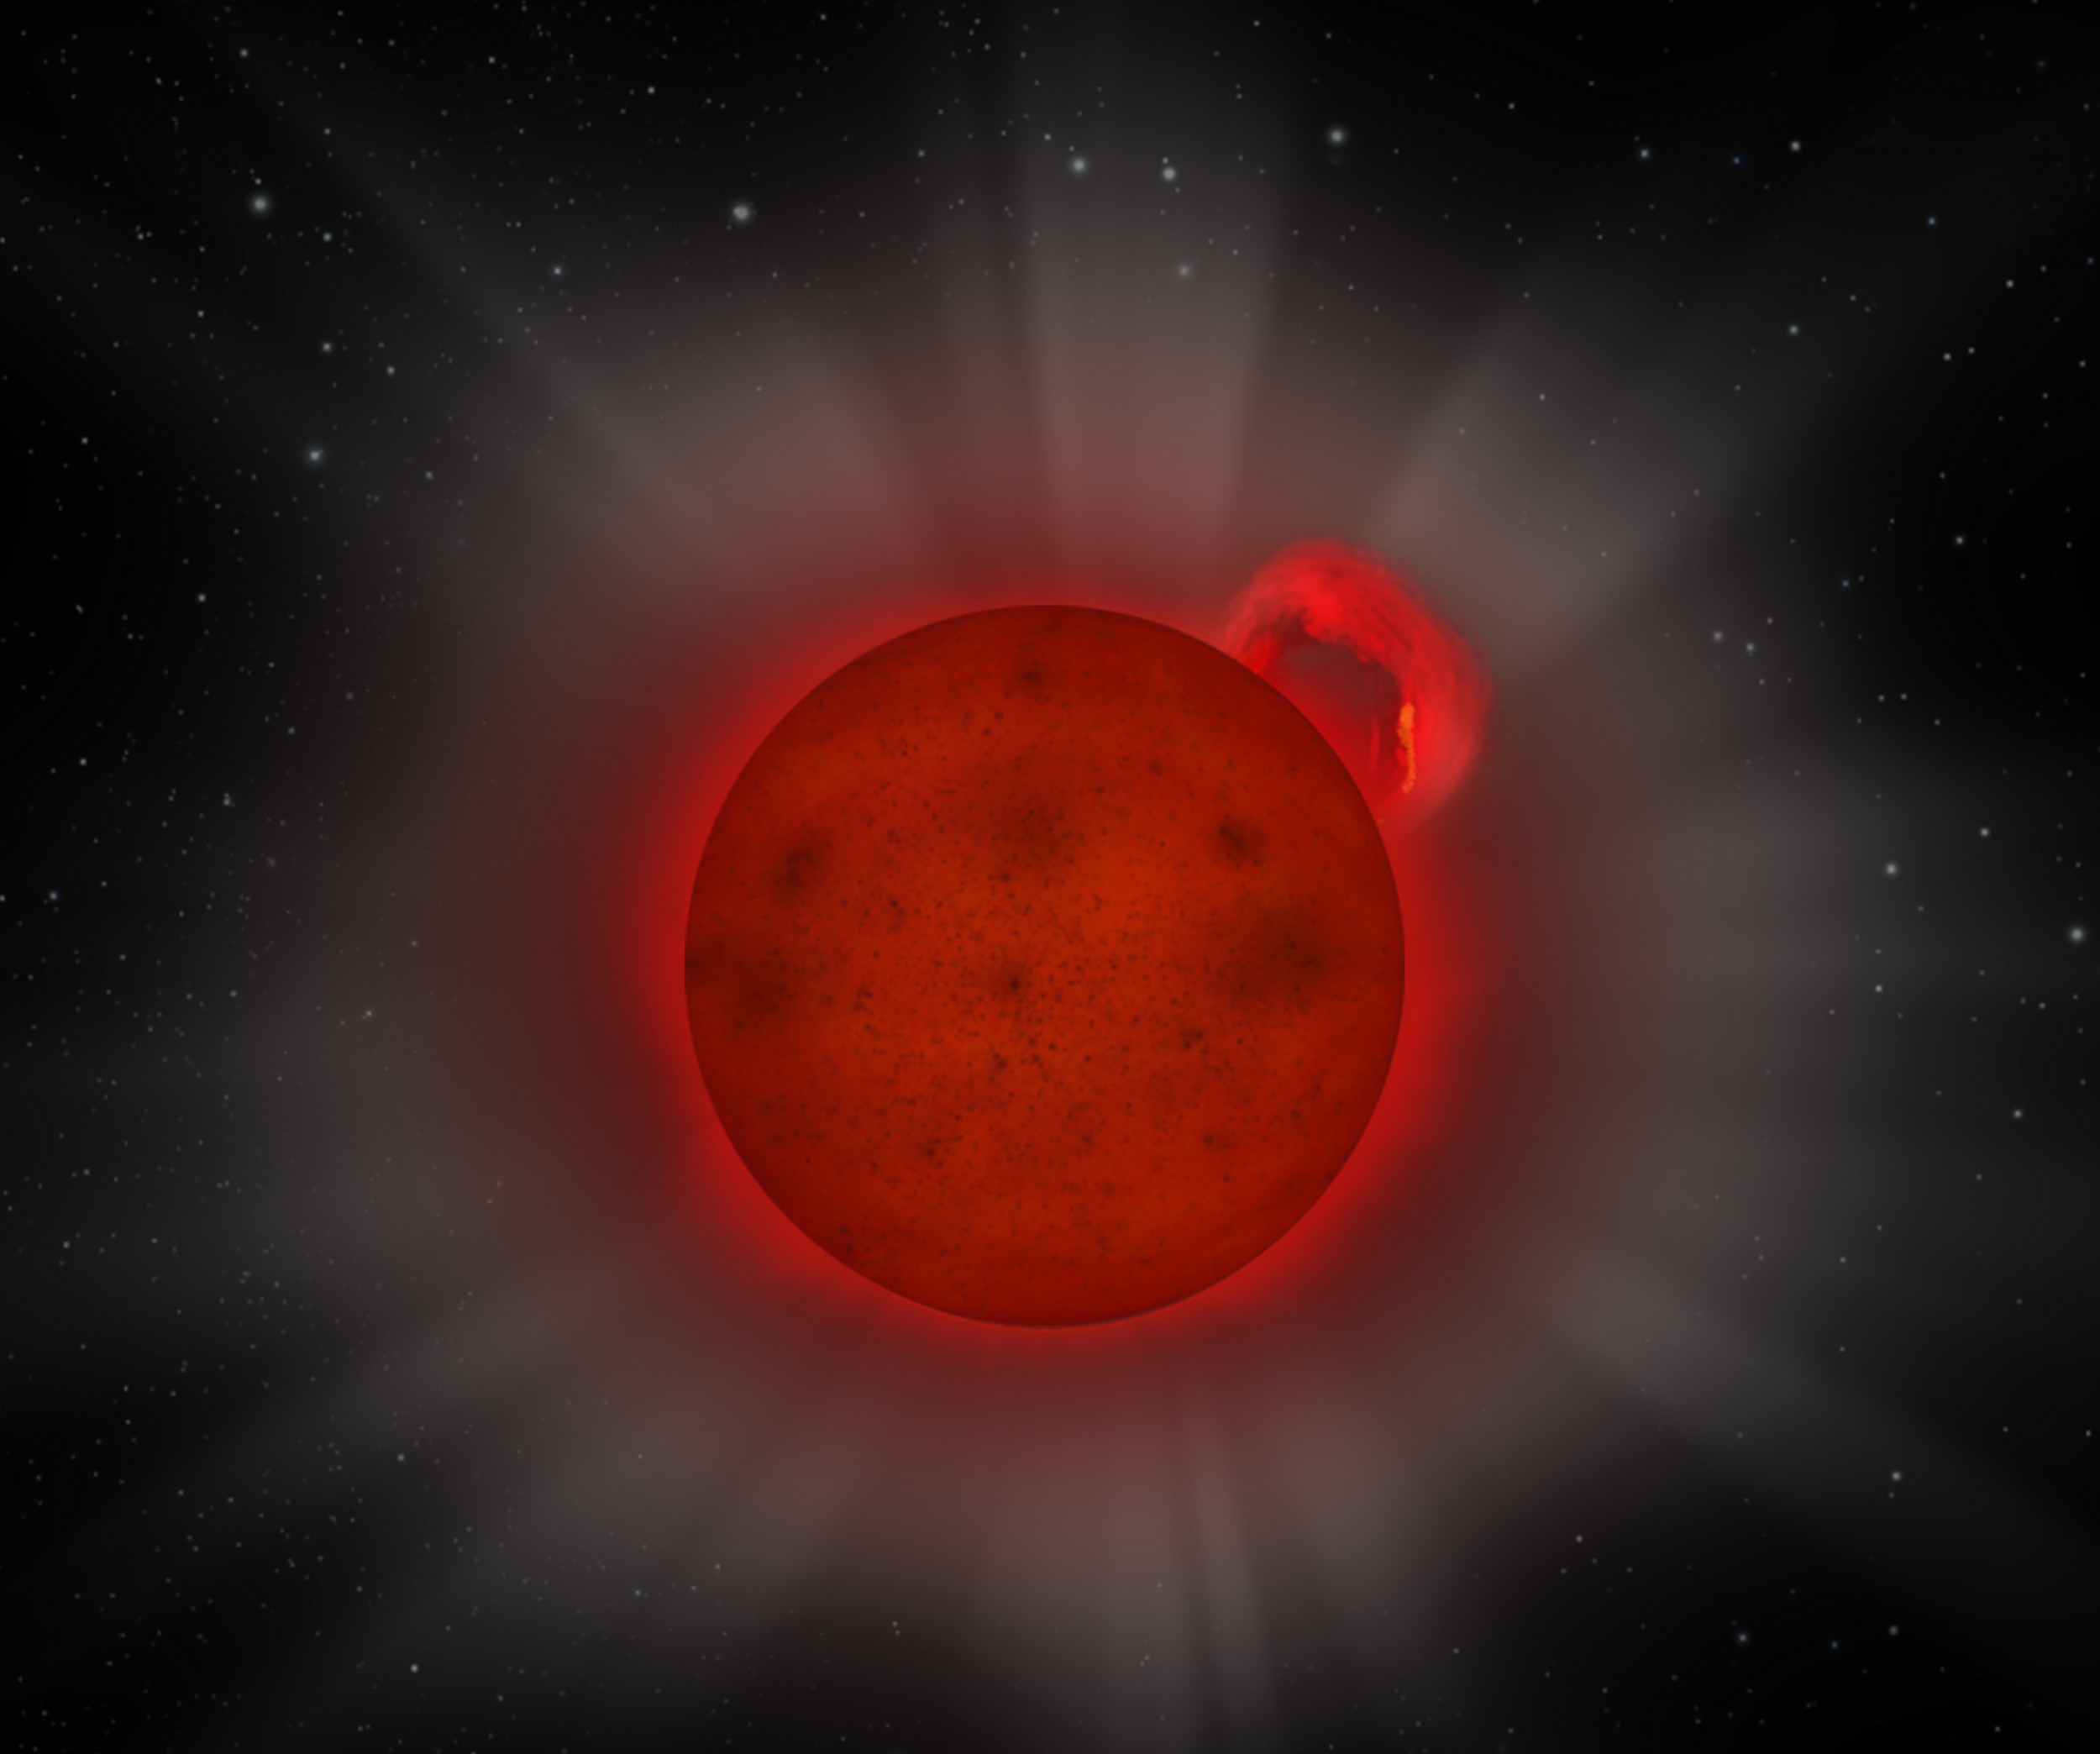 Tiny Star Emits Powerful X-ray Flare Ten Times More Intense Than Anything Our Sun Can Produce - Newsweek